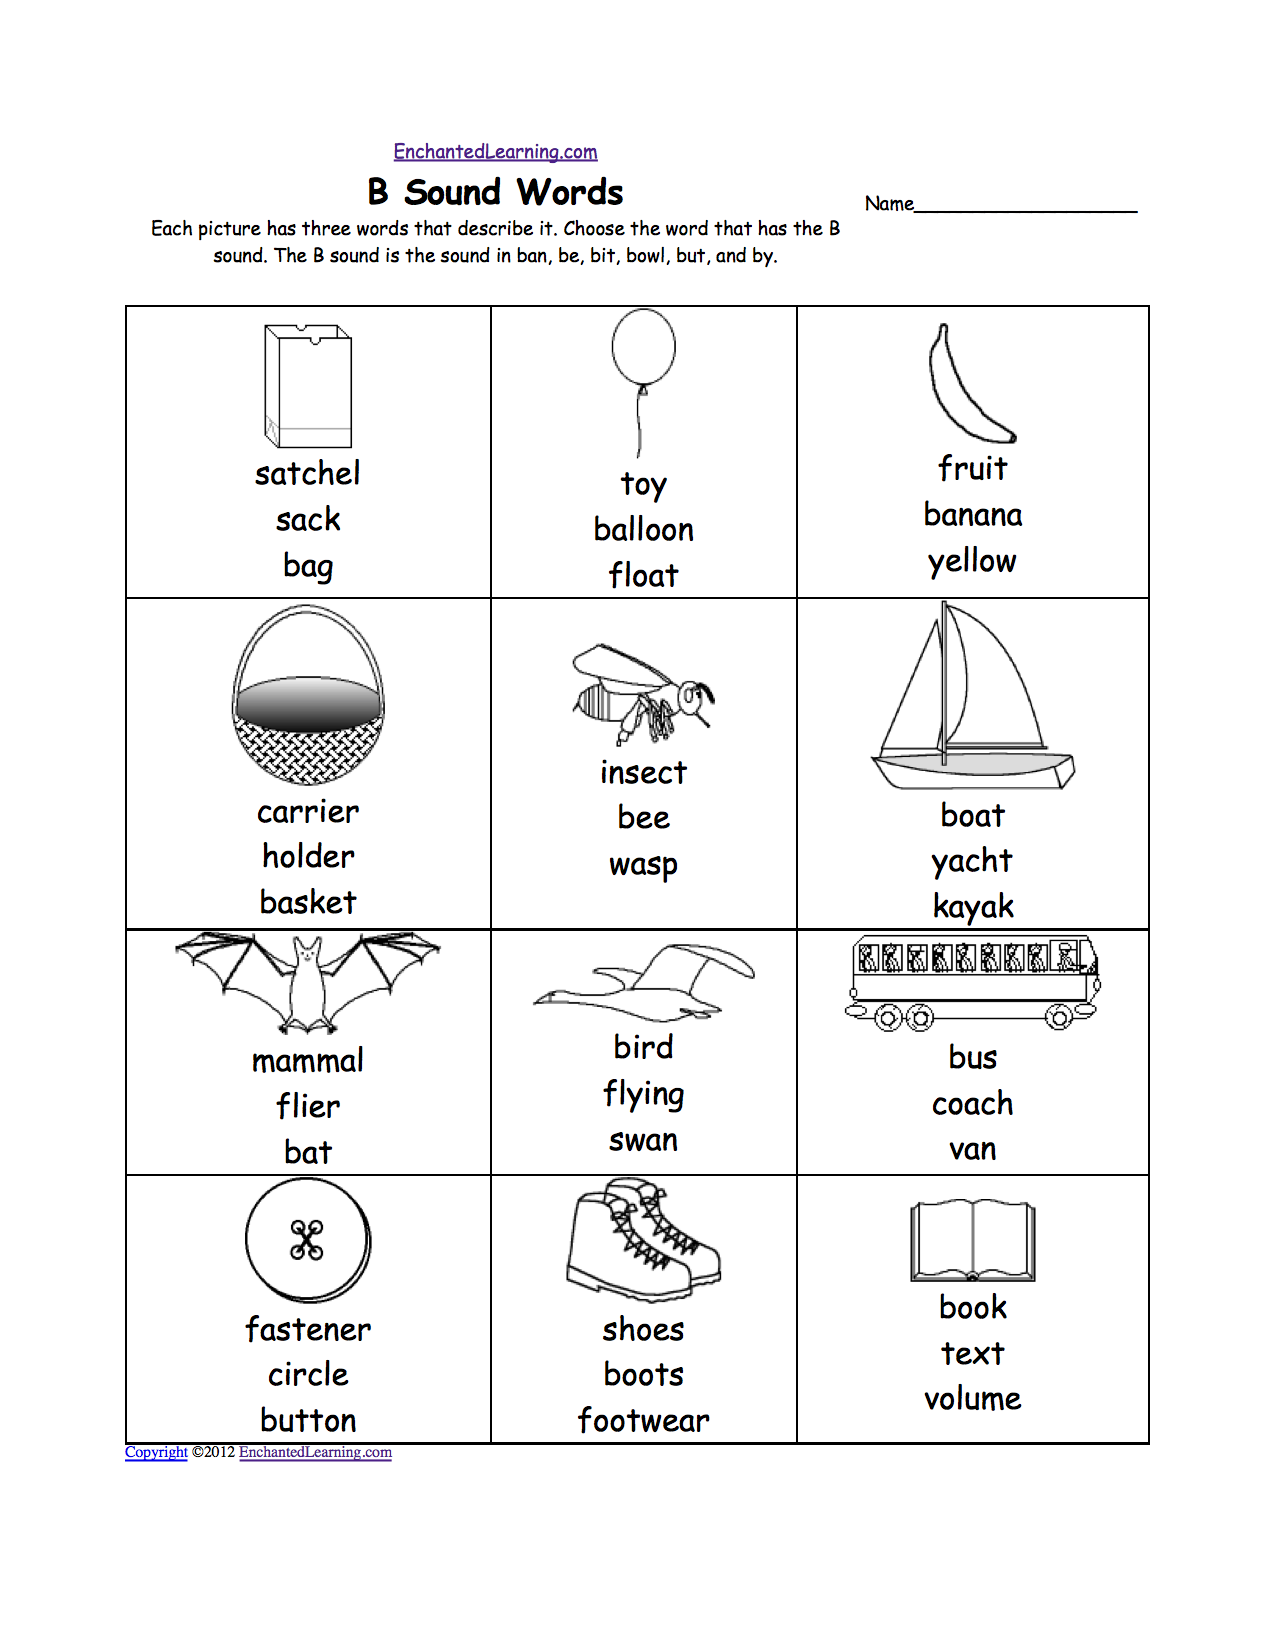 Weirdmailus  Inspiring Phonics Worksheets Multiple Choice Worksheets To Print  With Outstanding Quotbquot Sound Phonics Worksheet Multiple Choice Each Picture Has Three Words That Describe It Choose The Word That Has A Quotbquot Sound The Quotbquot Sound Is The Sound  With Extraordinary Hatchet Worksheet Also Percent And Decimal Worksheets In Addition Map Of Canada Worksheet And Grammar Worksheets Year  As Well As Math Worksheets For Year  Additionally Free Printable Worksheets For Kindergarten Alphabet From Enchantedlearningcom With Weirdmailus  Outstanding Phonics Worksheets Multiple Choice Worksheets To Print  With Extraordinary Quotbquot Sound Phonics Worksheet Multiple Choice Each Picture Has Three Words That Describe It Choose The Word That Has A Quotbquot Sound The Quotbquot Sound Is The Sound  And Inspiring Hatchet Worksheet Also Percent And Decimal Worksheets In Addition Map Of Canada Worksheet From Enchantedlearningcom